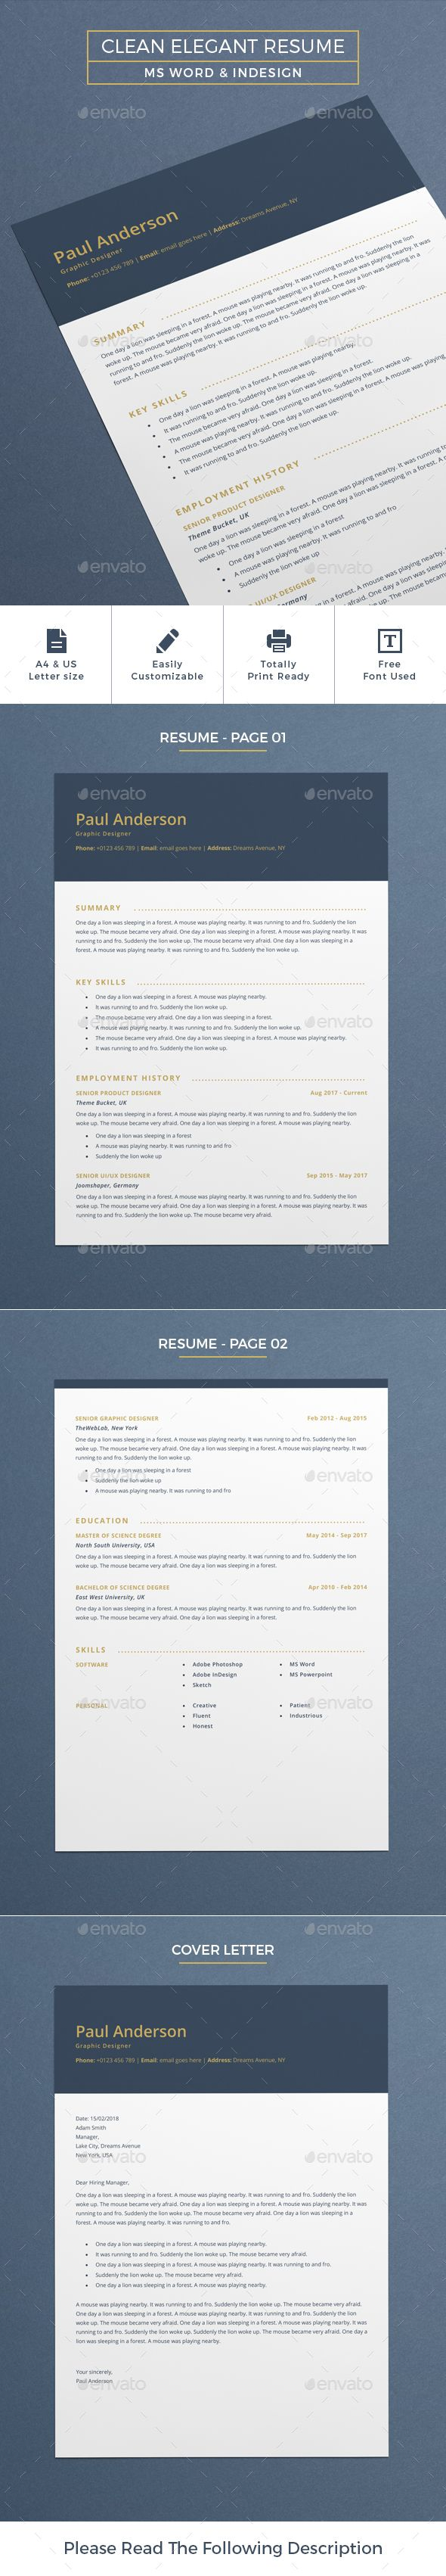 Clean Elegant Resume Resumes Stationery Clean